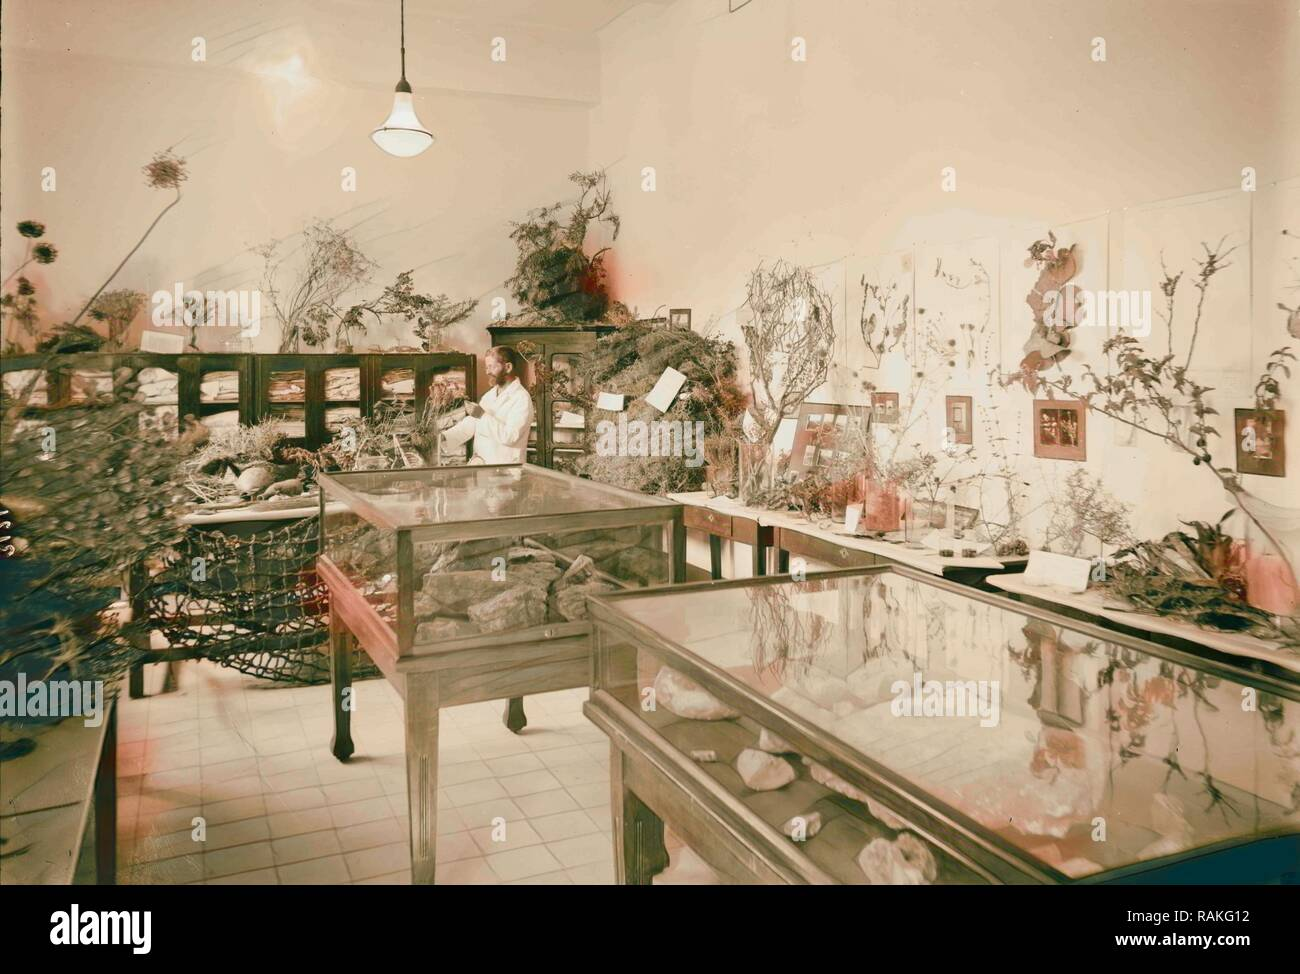 Zionist activities in Palestine. The Hebrew University. Biblical botanical section. 1925, Jerusalem. Reimagined - Stock Image